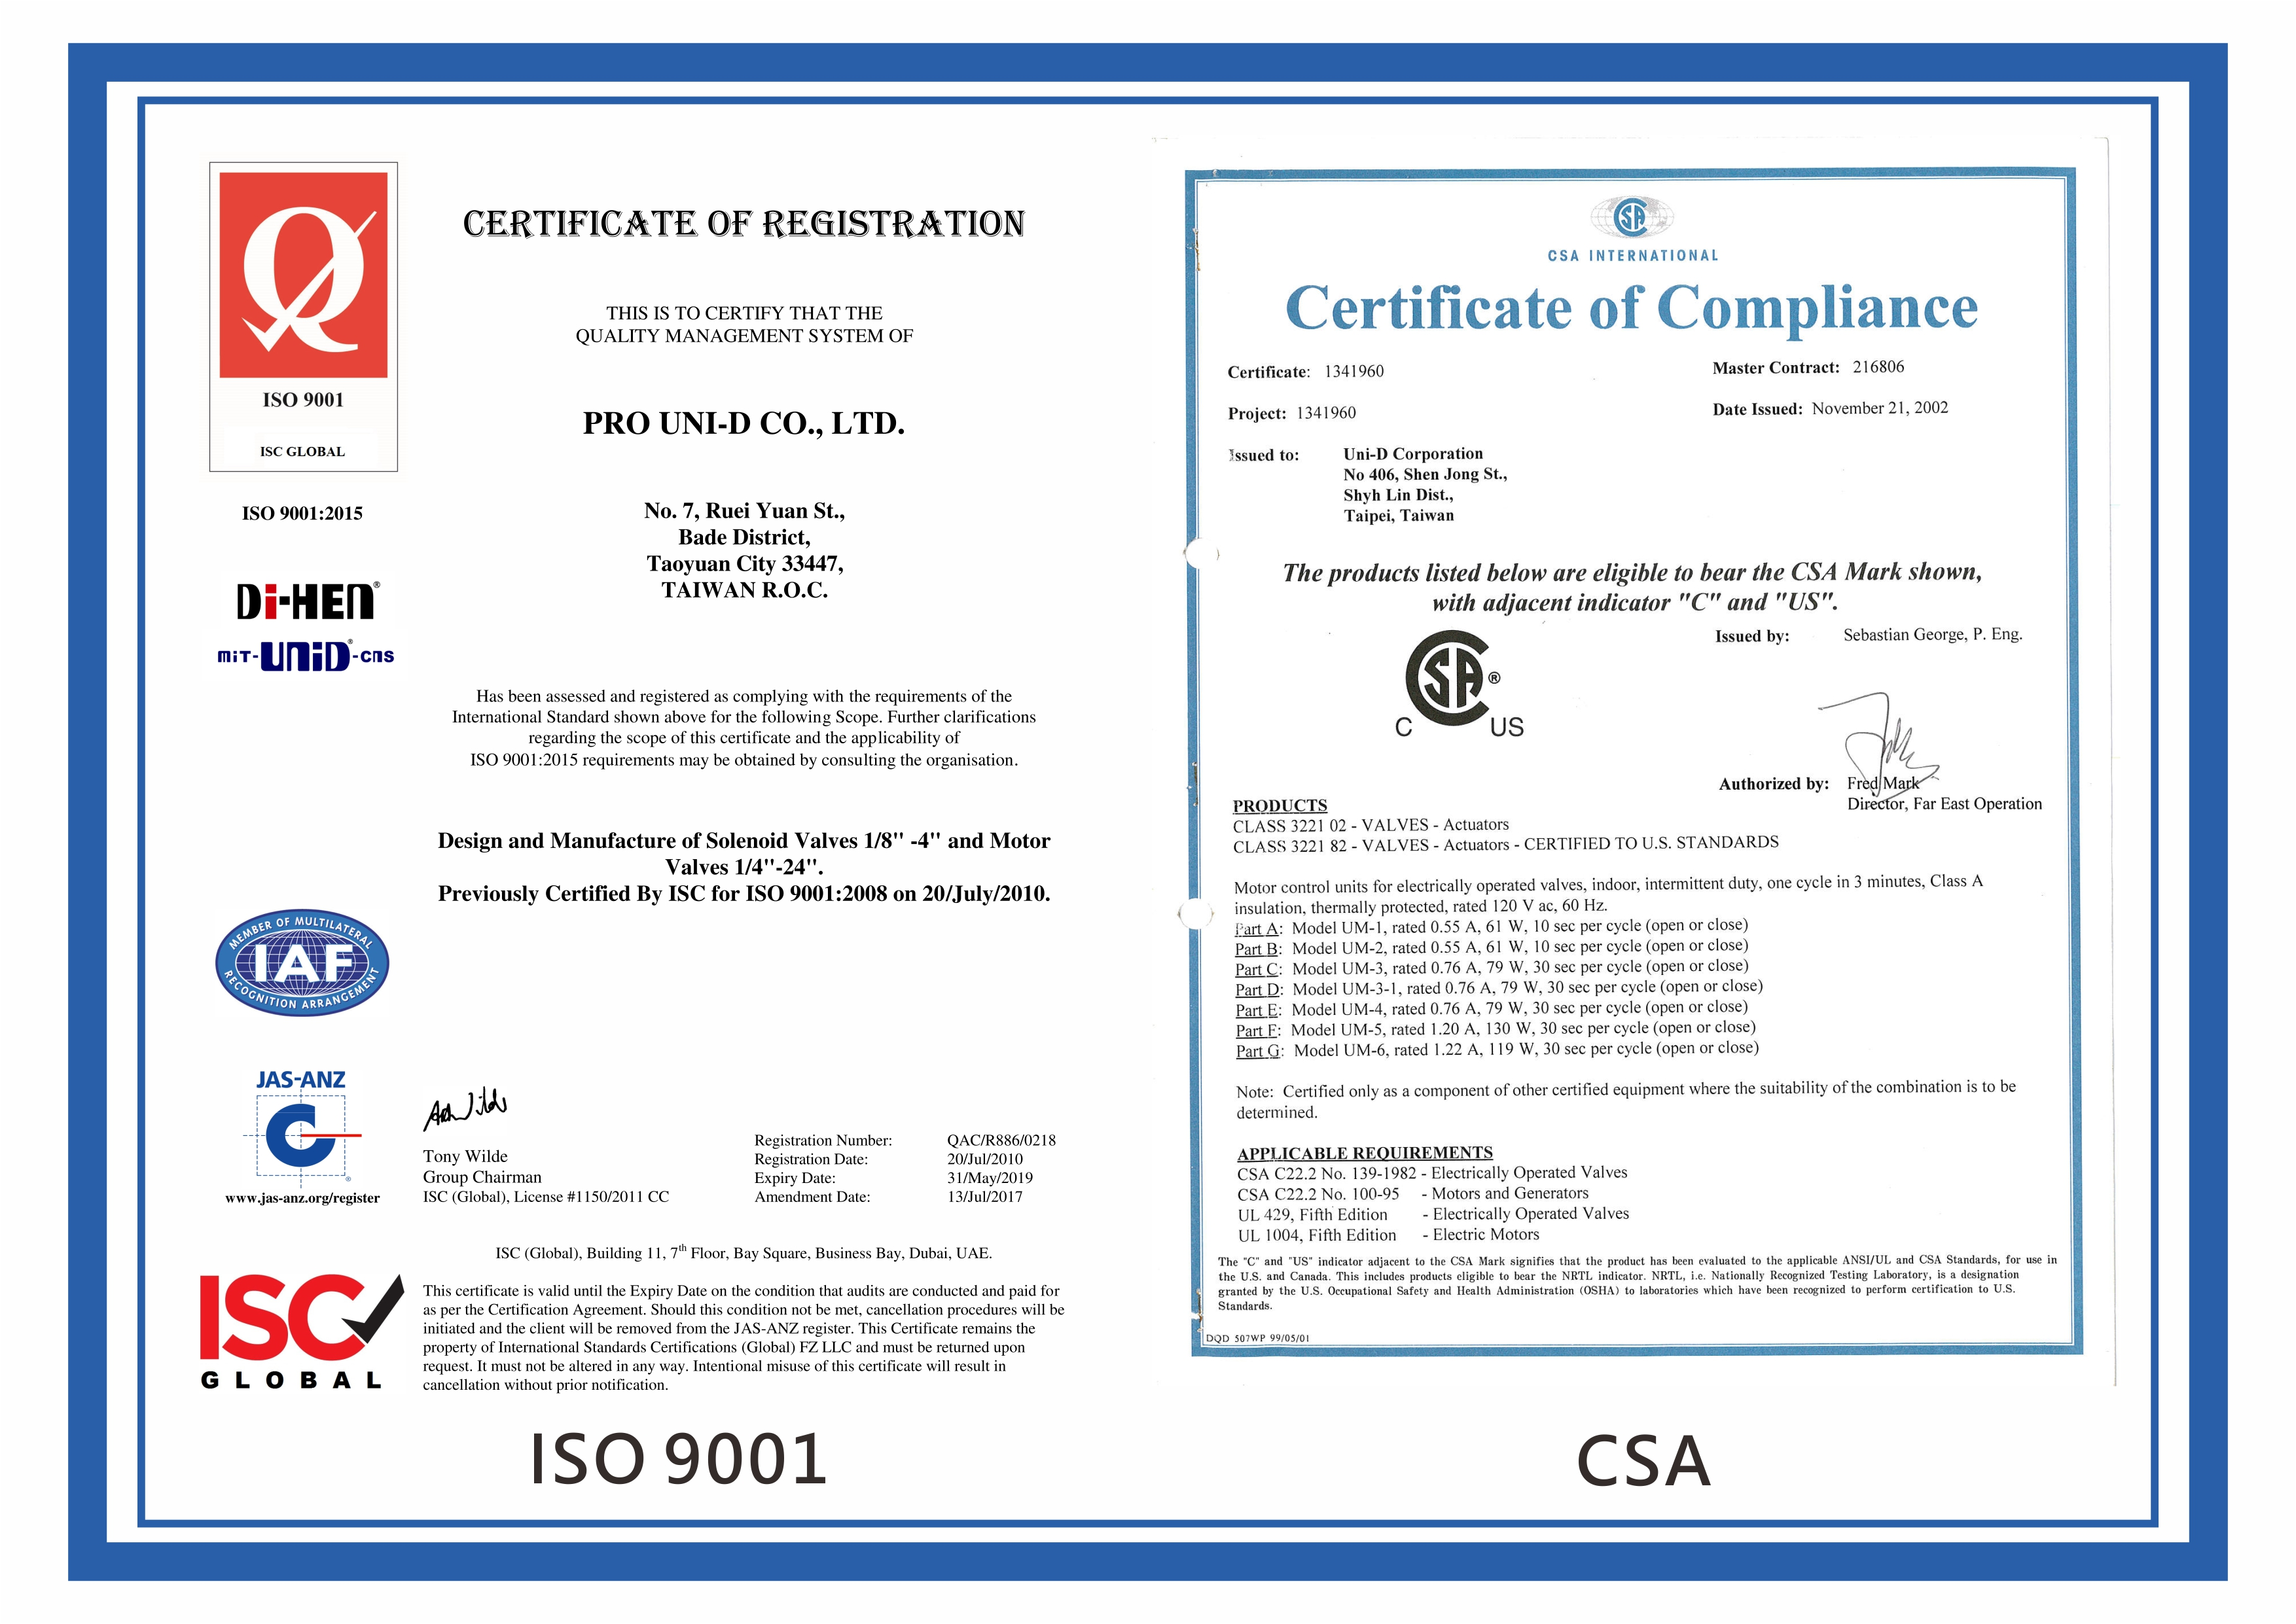 Mit unid cns certification certification 1betcityfo Choice Image